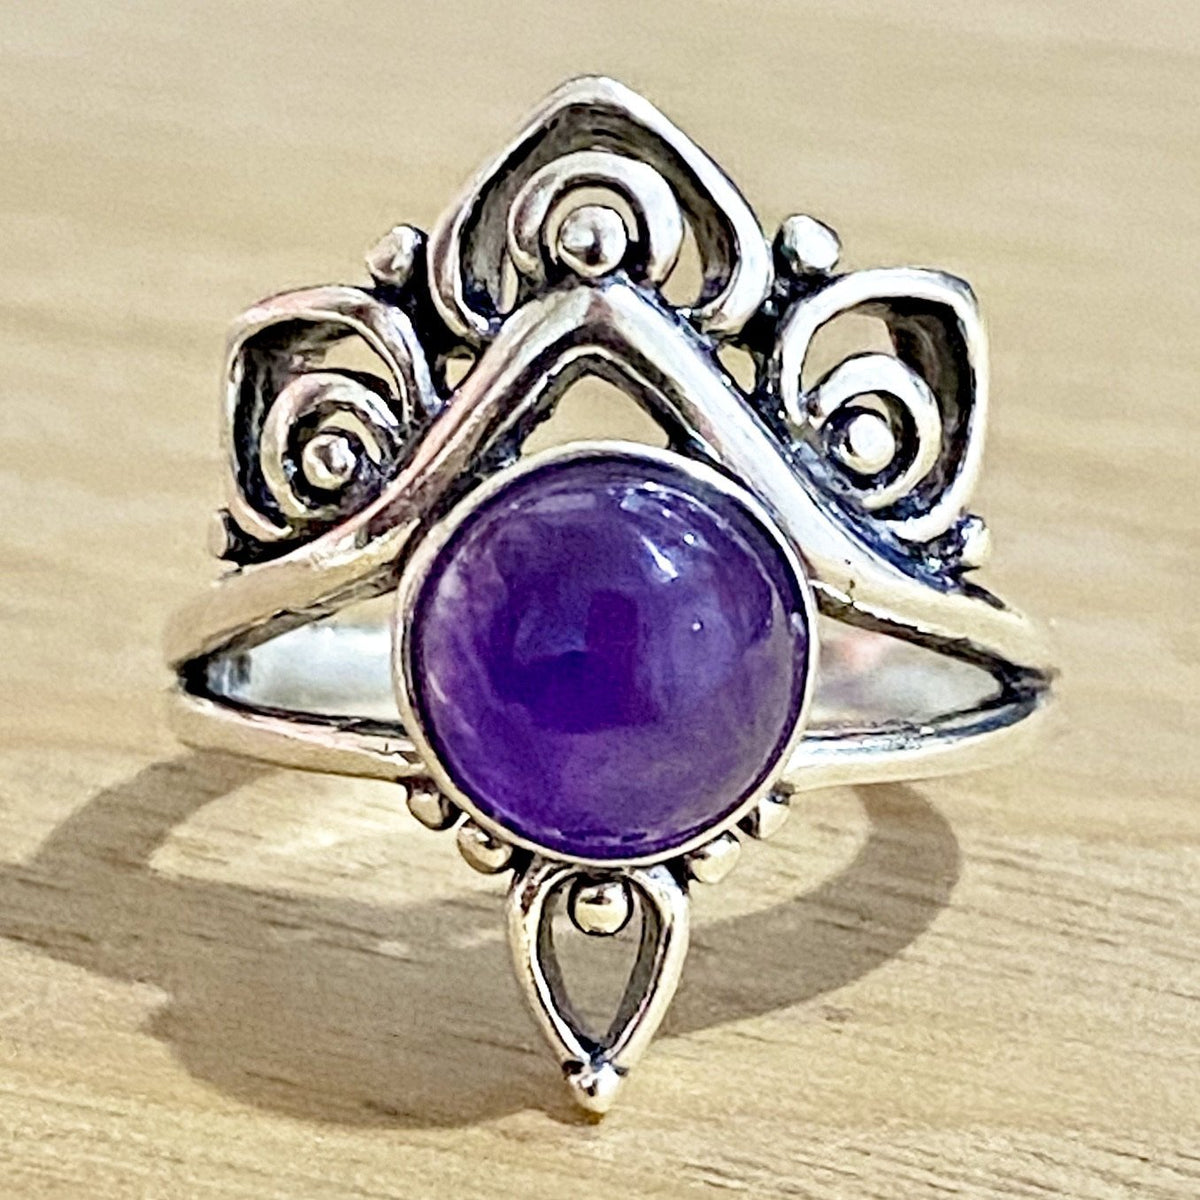 Laihas Handcrafted Romantic Lotus Amethyst Ring Ass Sizes - Laihas Bohemian Dreaming